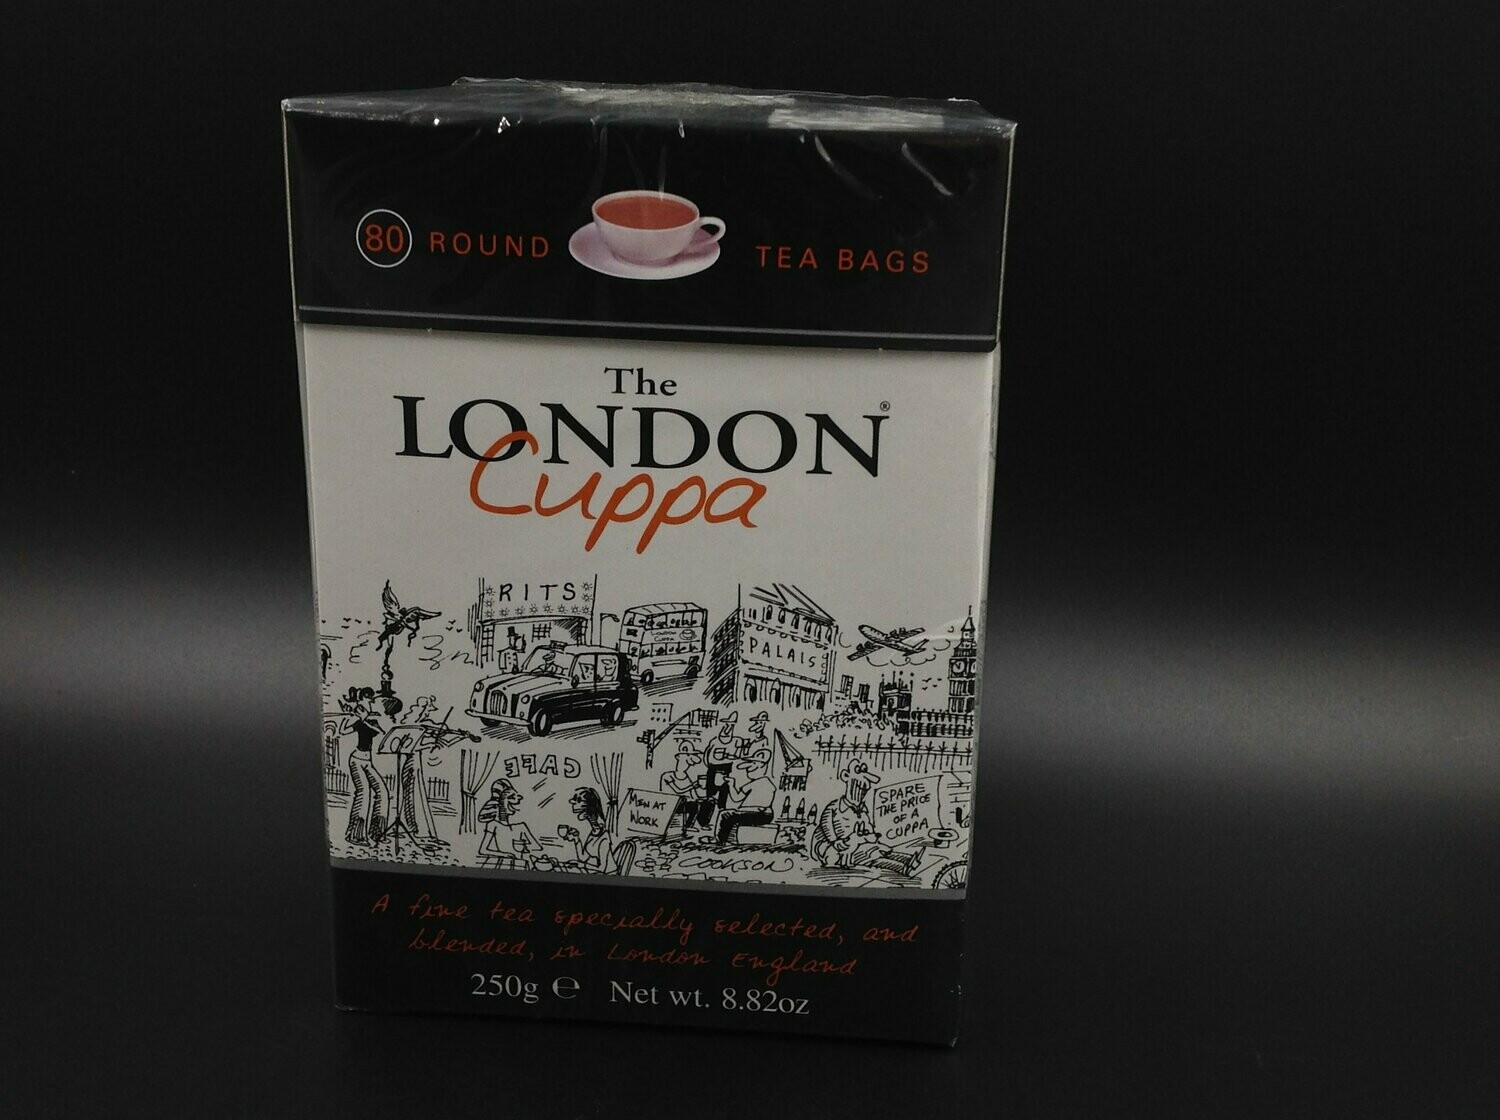 The London Cuppa 80 Bags 250g